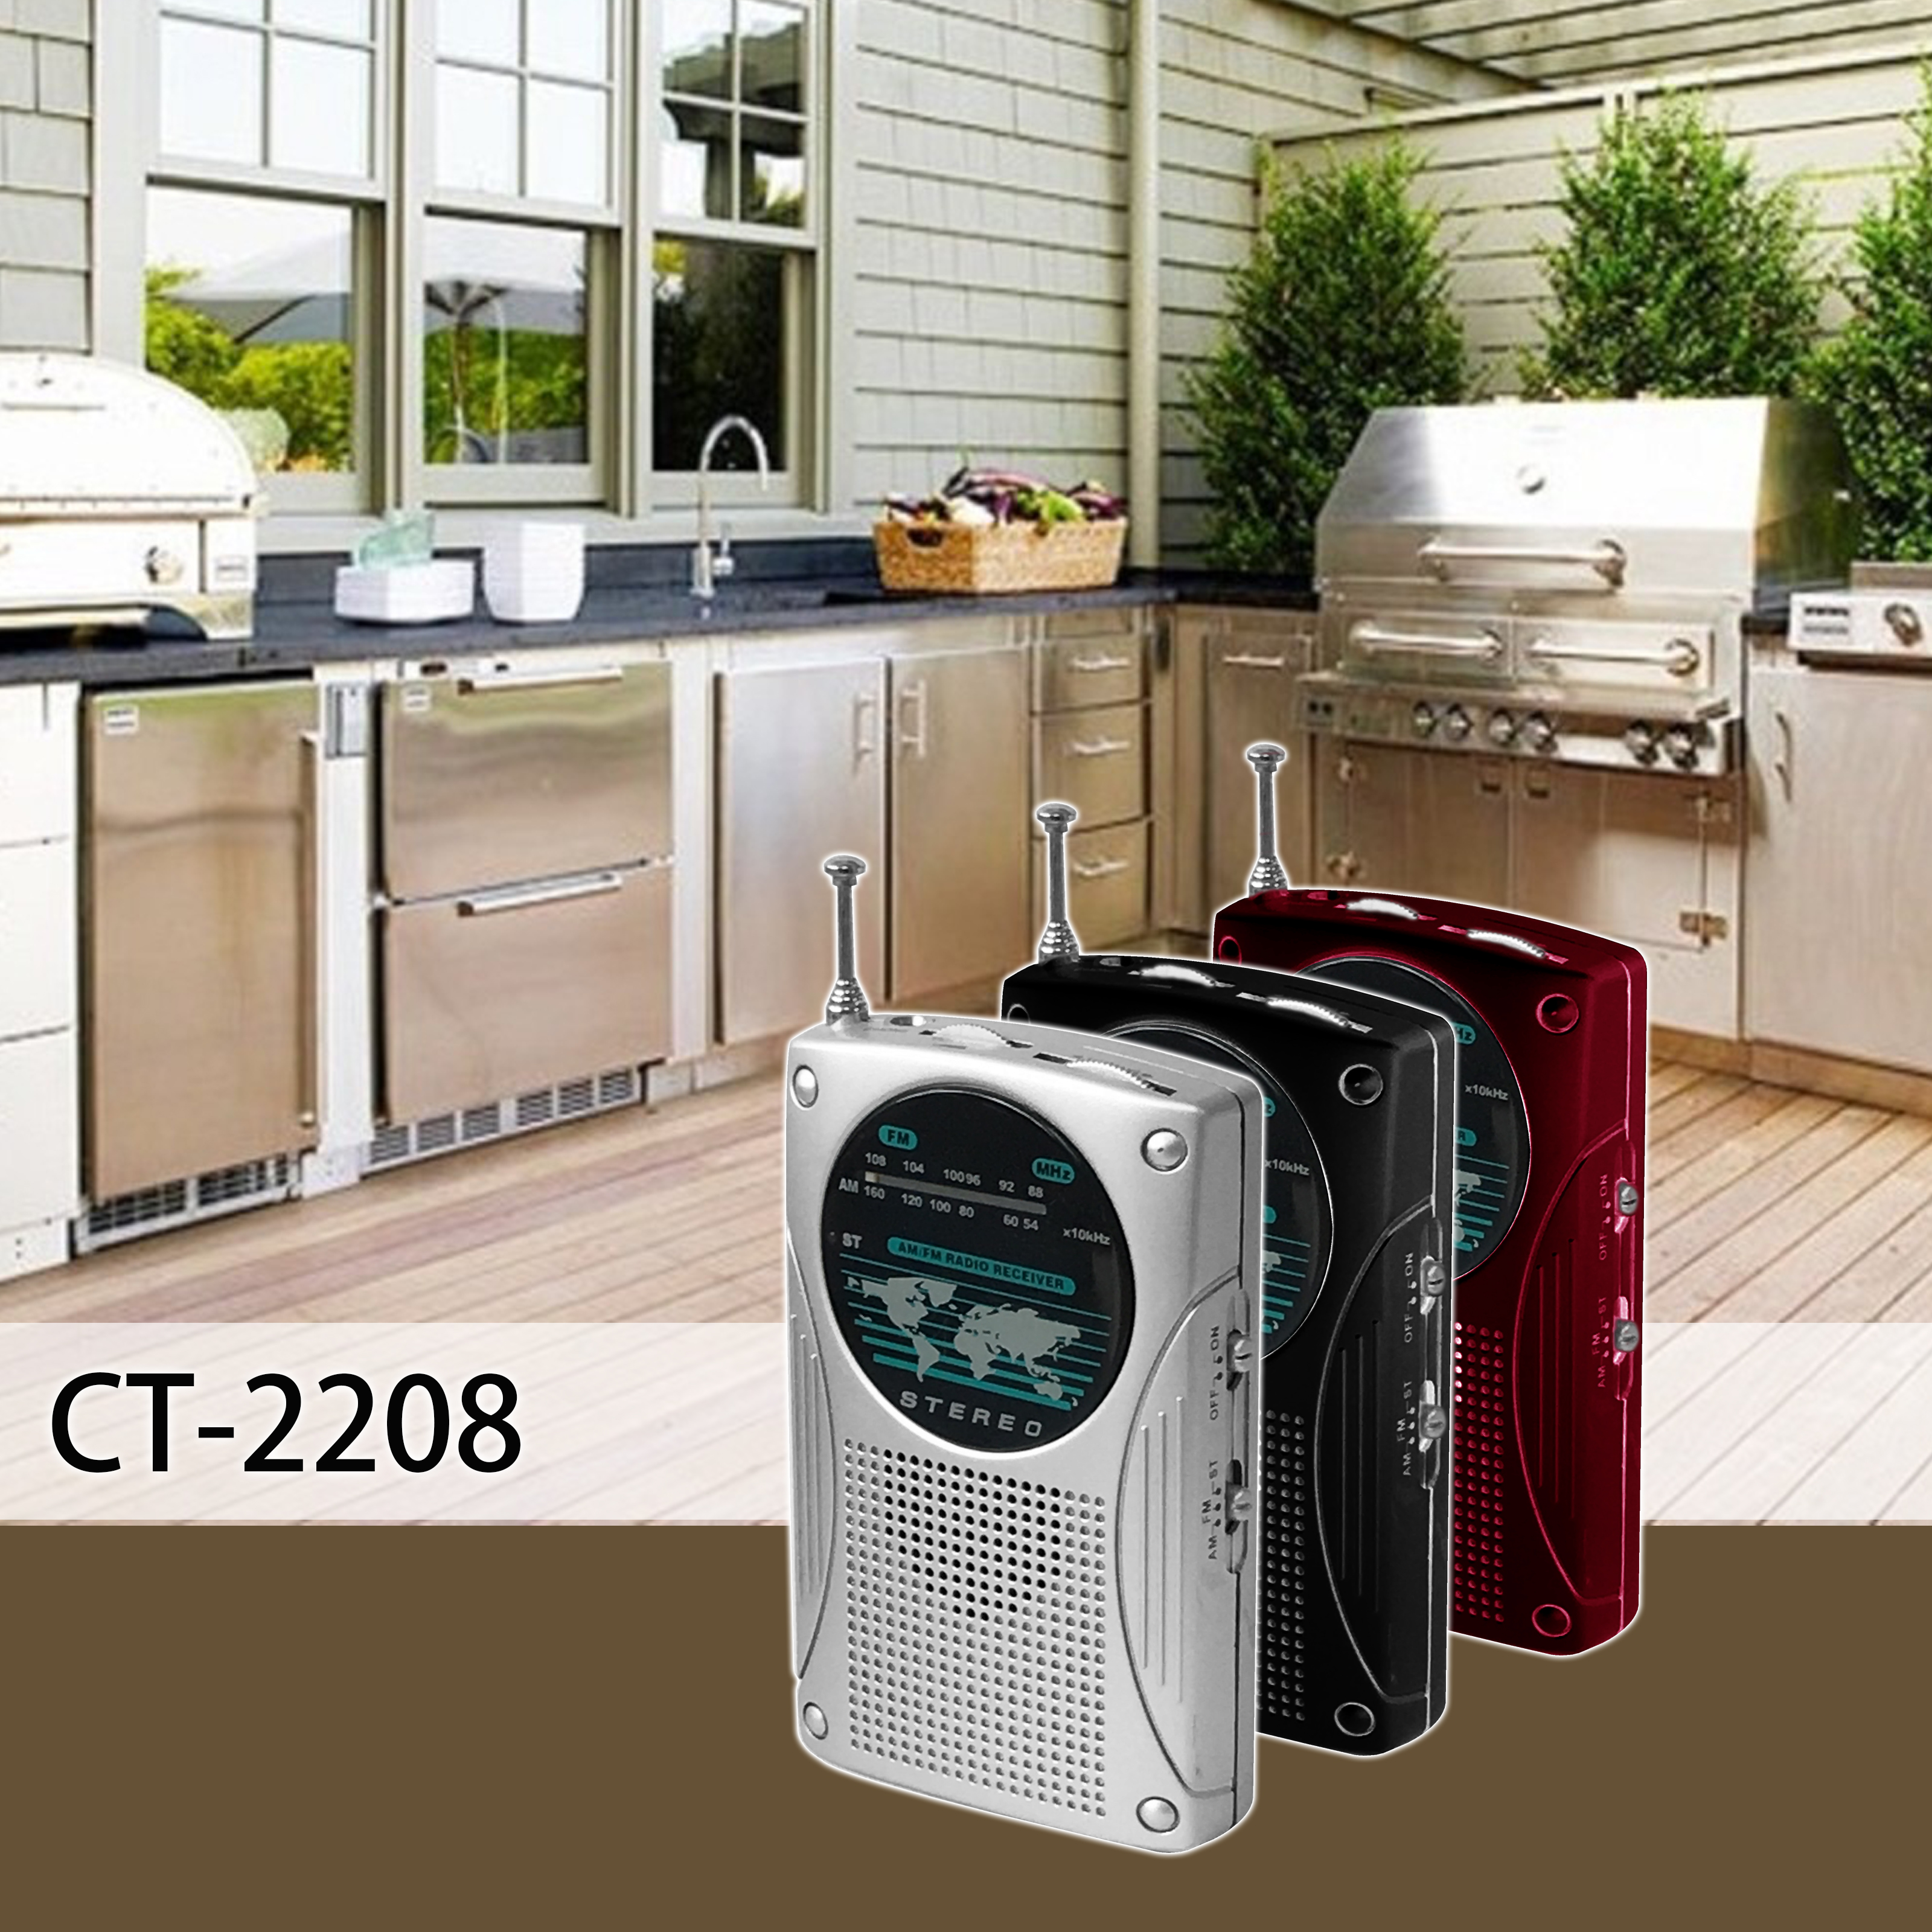 CT-2208 outside kitchen.jpg